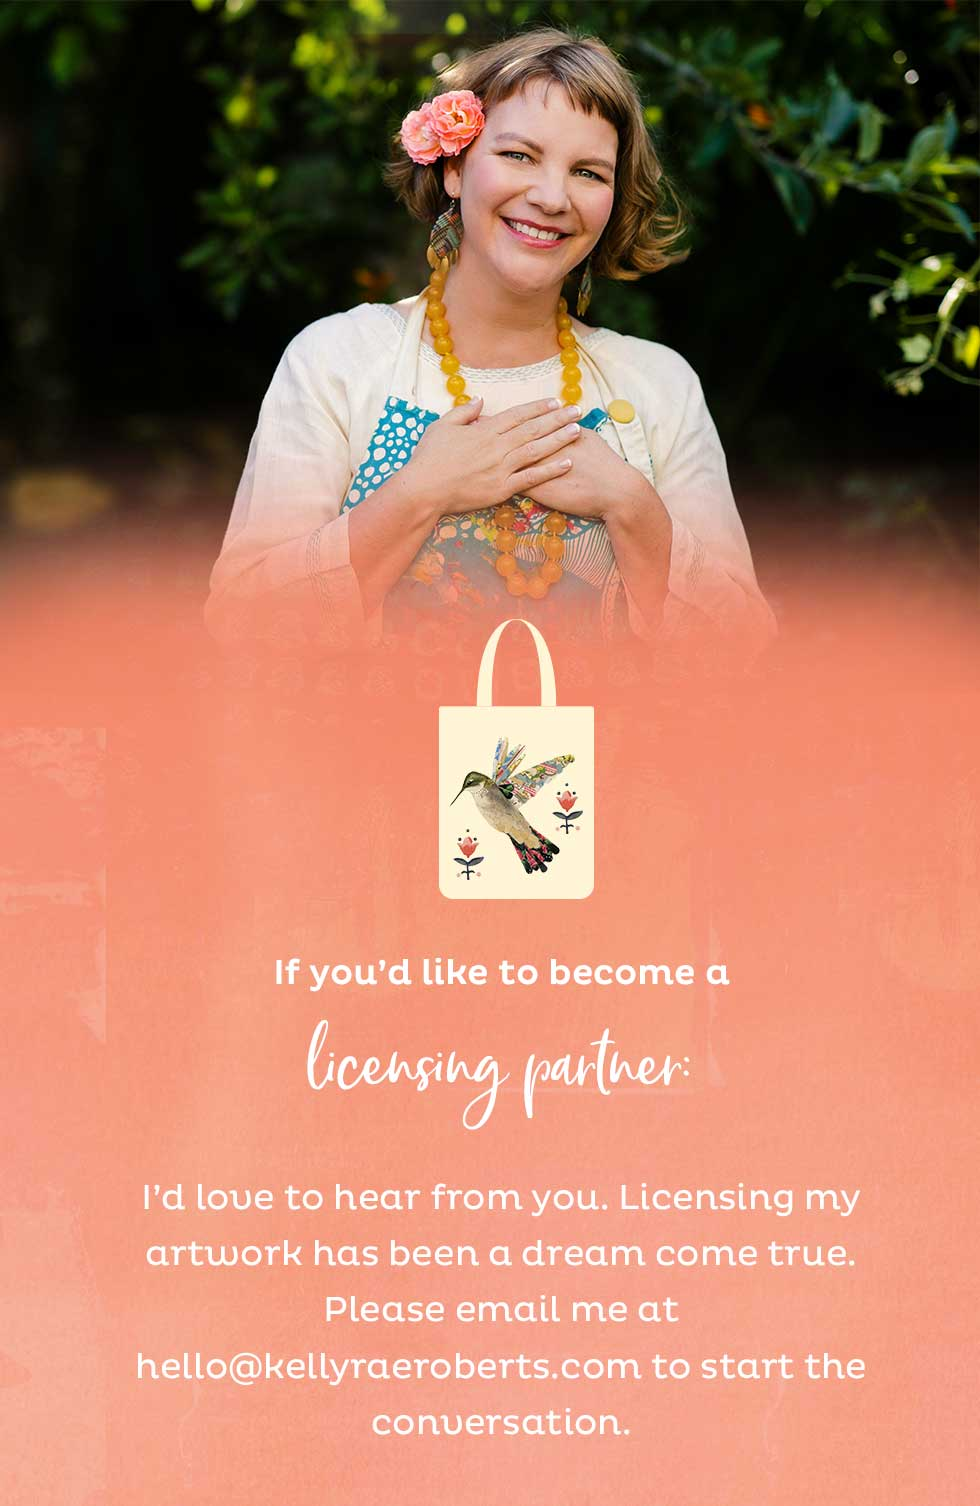 If you'd like to become a licensing partner: I'd love to hear from you. Licensing my artwork has been a dream come true. Please email me to have a conversation at hello@kellyraeroberts.com to start the conversations.